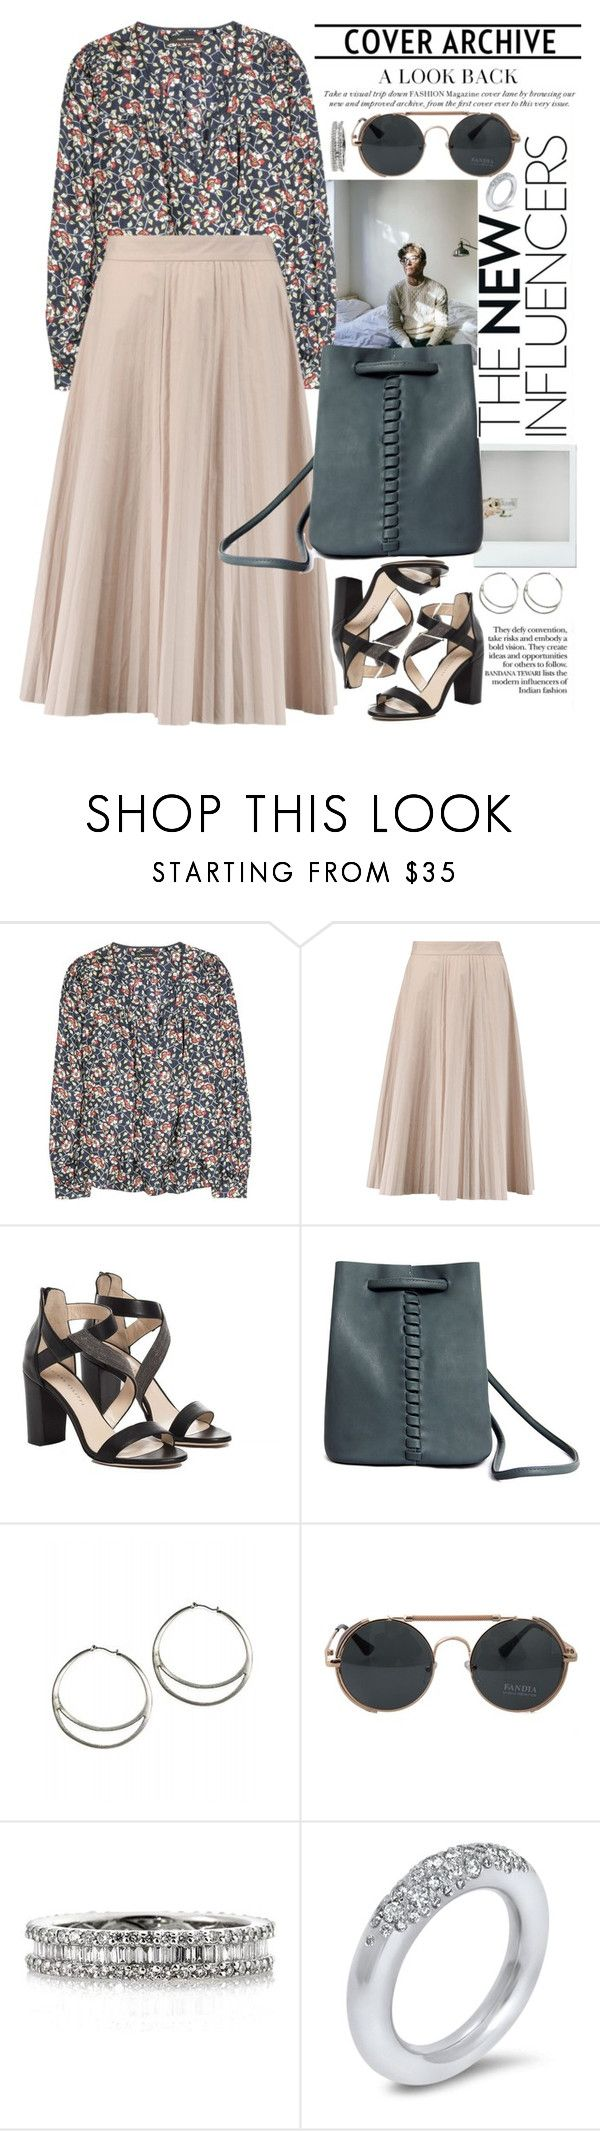 """Без названия #3831"" by catelinota-a ❤ liked on Polyvore featuring Oxford, Isabel Marant, Joseph, FABIANA FILIPPI, Mark Broumand and Hargreaves Stockholm"